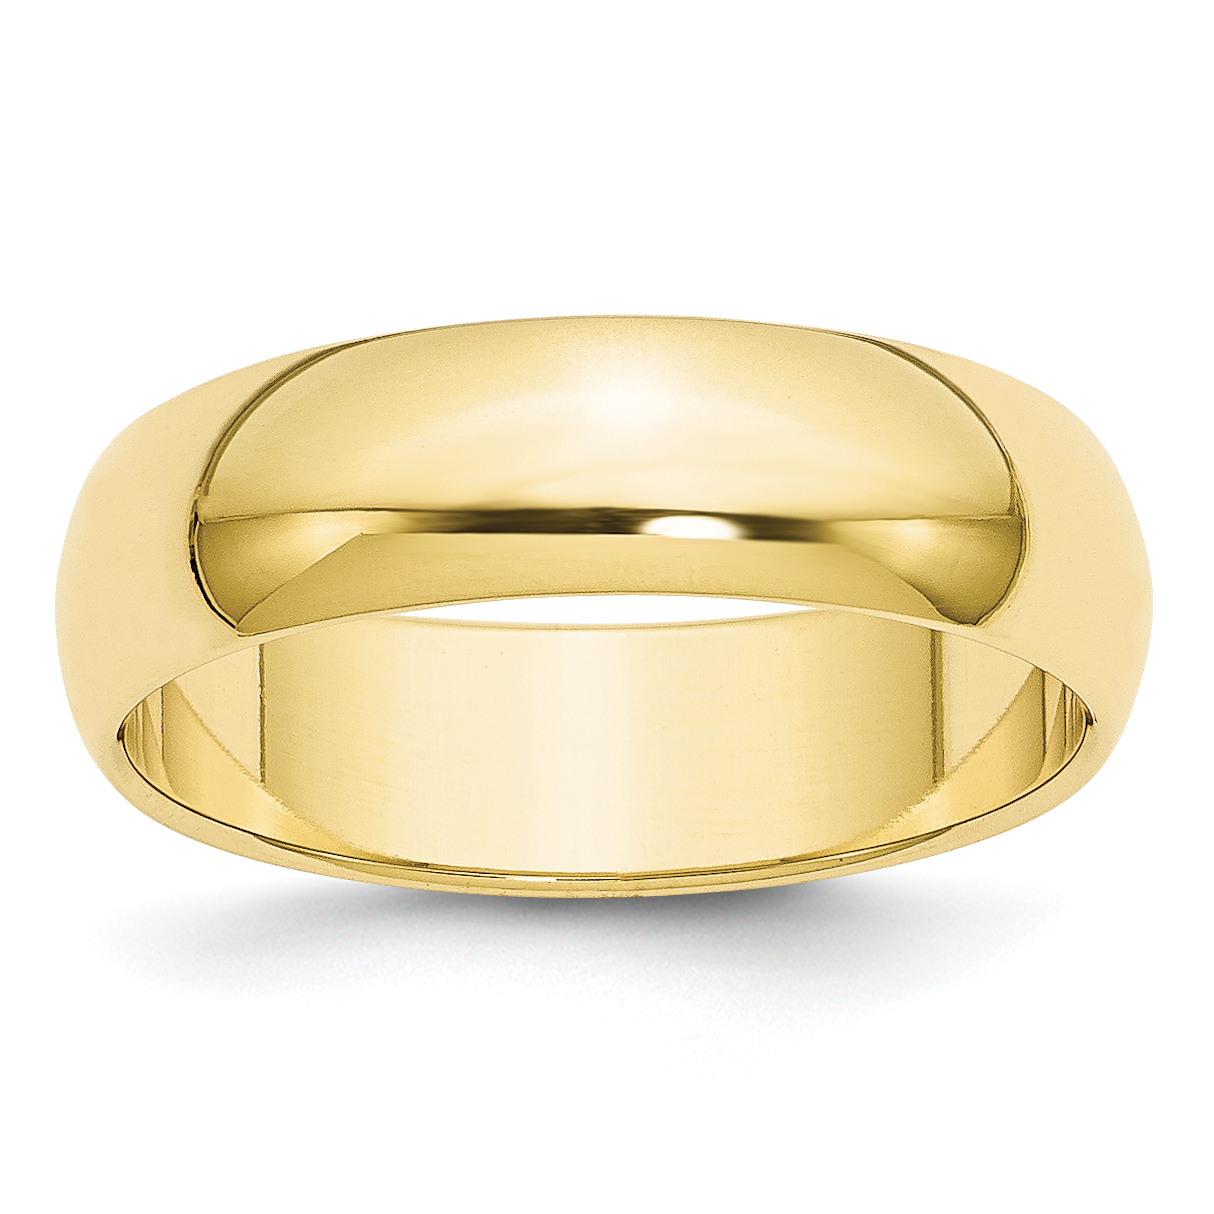 Roy Rose Jewelry 10K Yellow Gold 6mm Half Round Wedding Band Ring Size 9